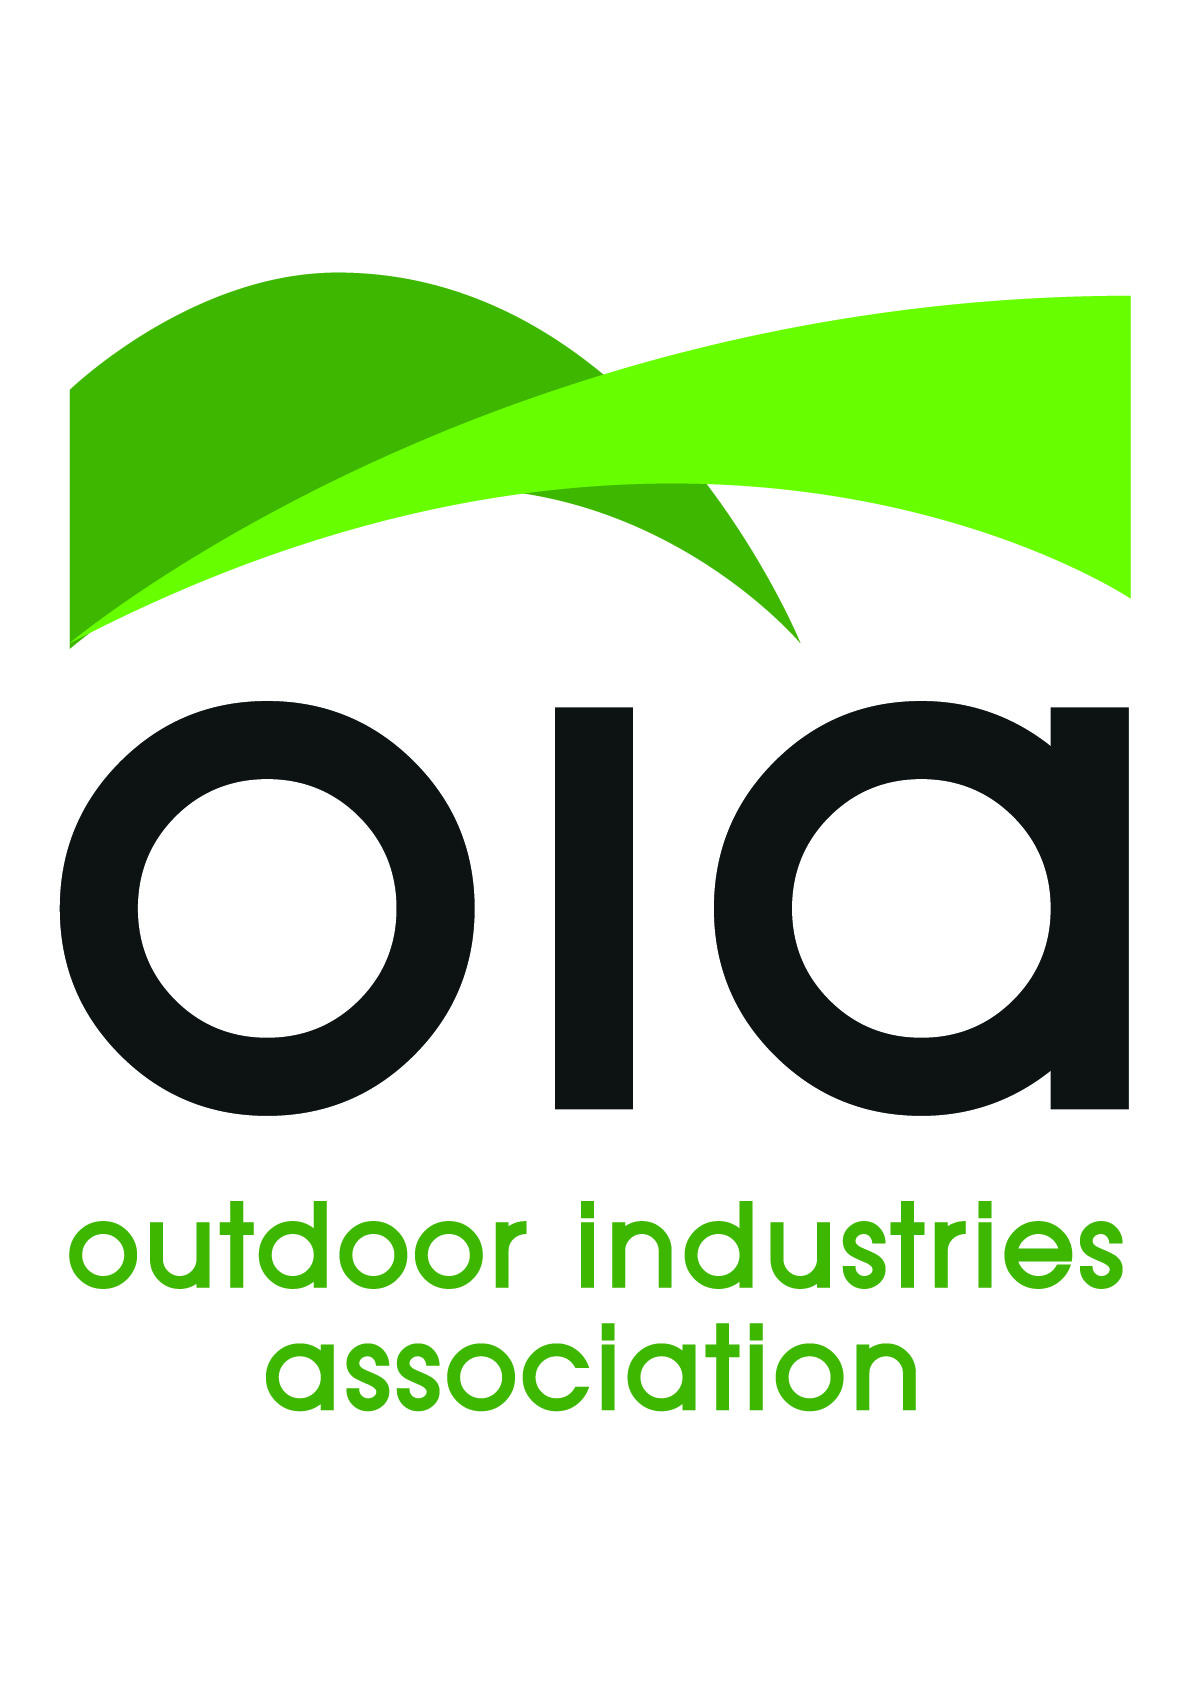 outdoor industry Now, outdoor industry leaders will have hard numbers to back up their business the math is expected to show that recreation is a vital pillar to a strong economy.